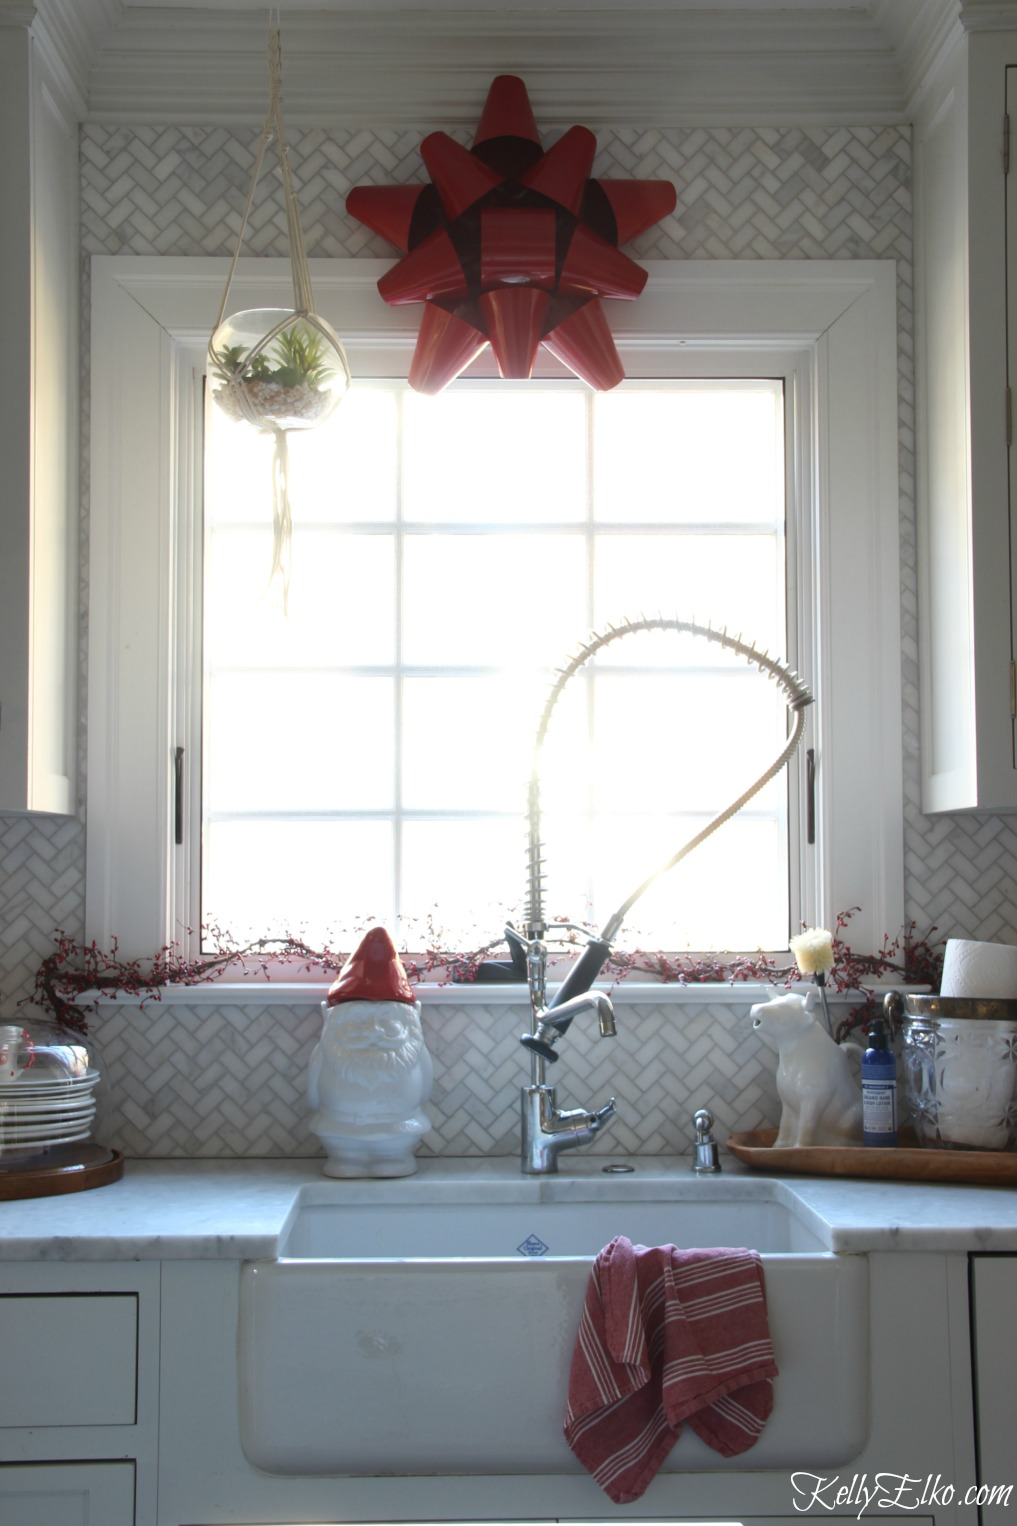 Christmas Kitchen - love the big red metal bow instead of a wreath kellyelko.com